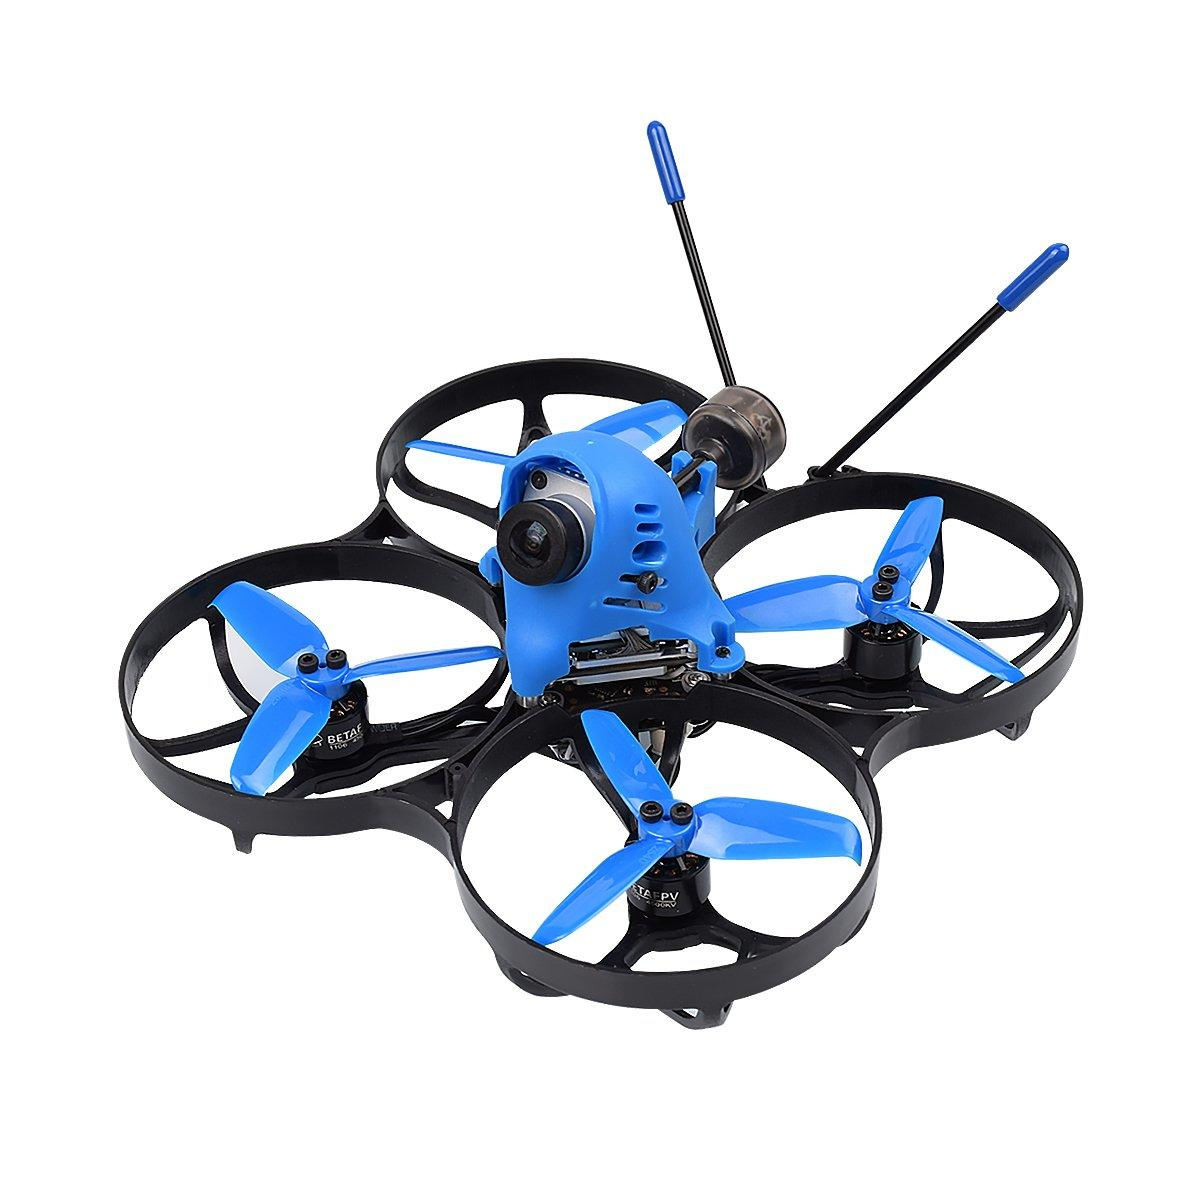 Betafpv Caddx Vista HD Whoop